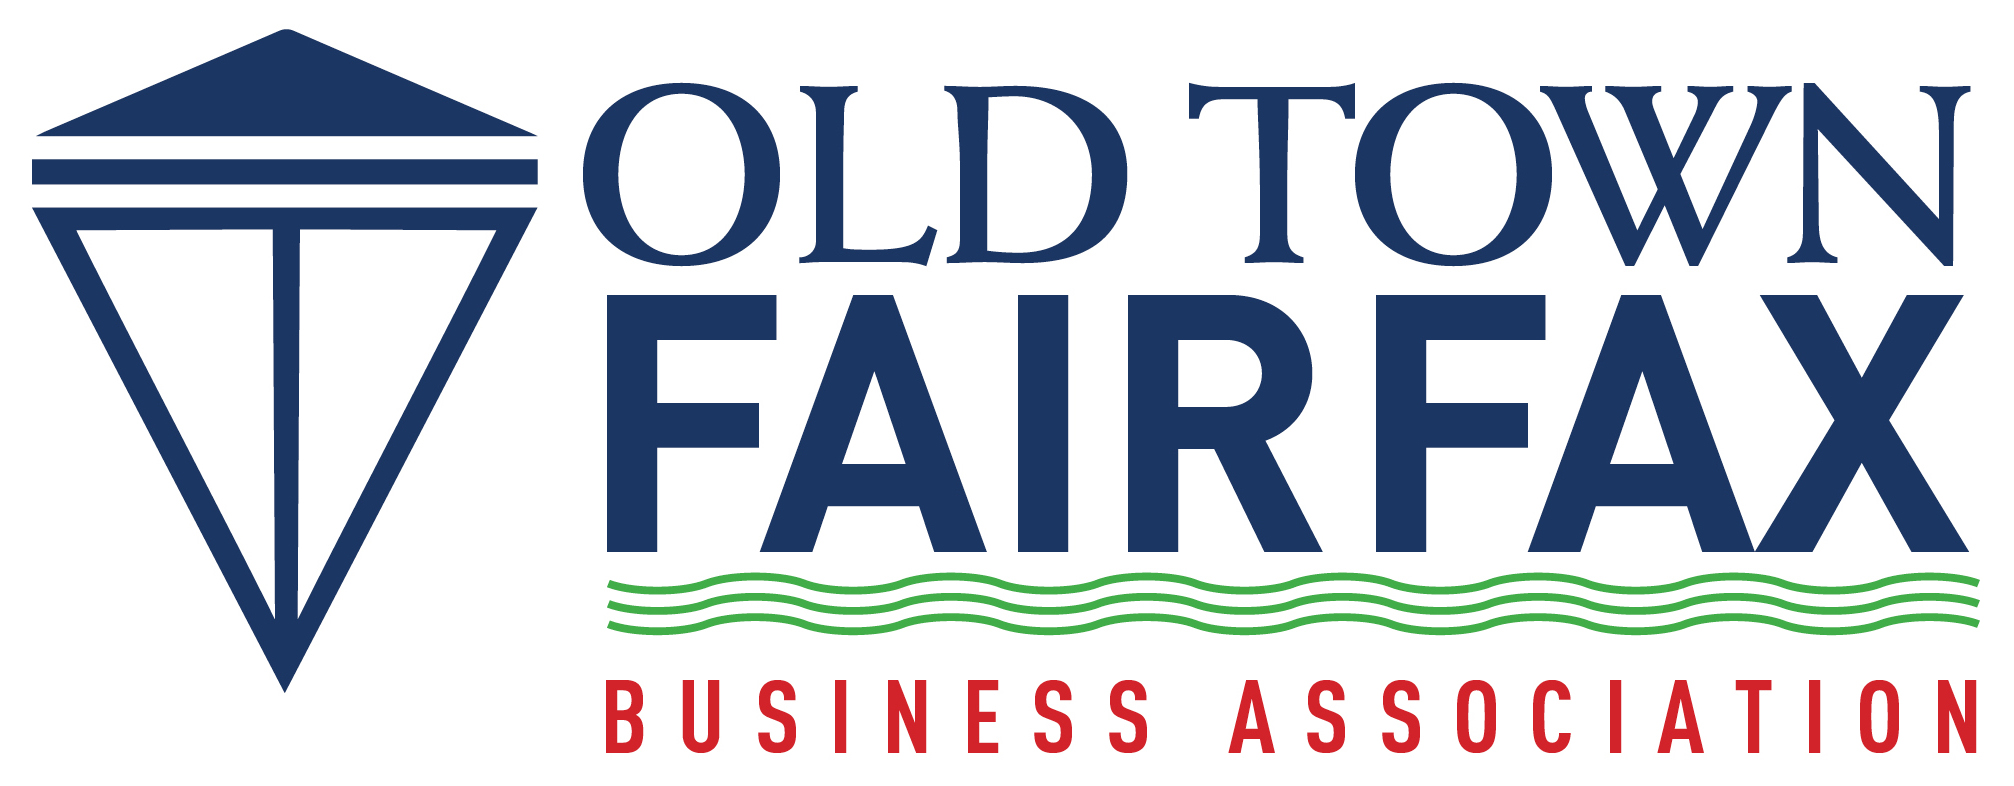 Old Town Fairfax Business Association